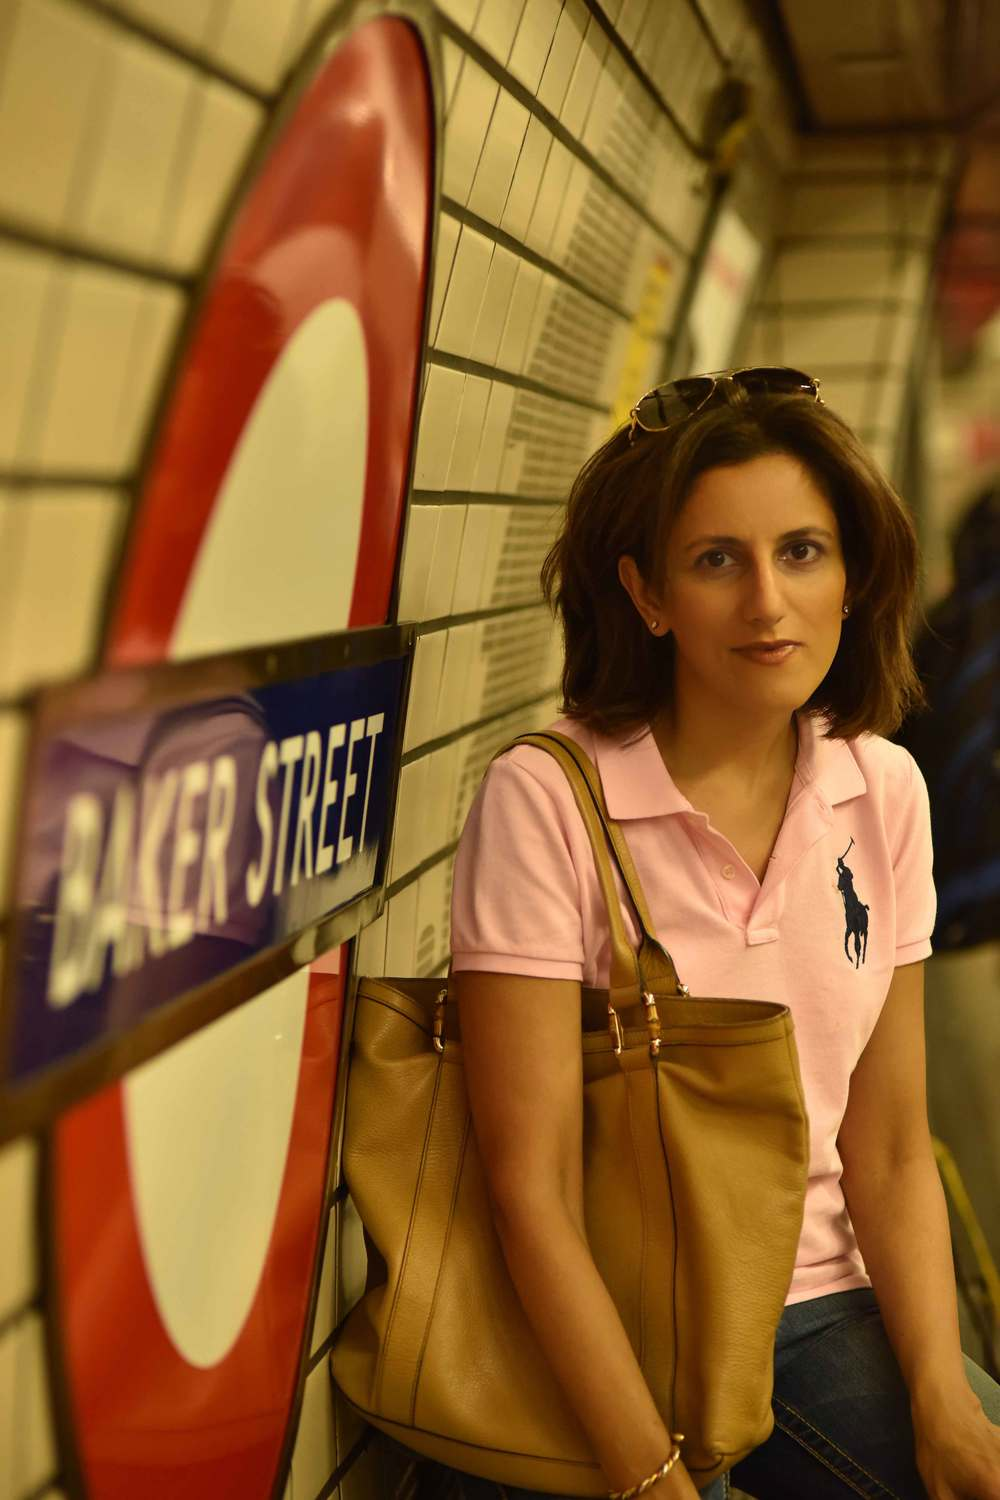 Ralph Lauren skinny polo tee, Baker Street underground station, London. Image©sourcingstyle.com